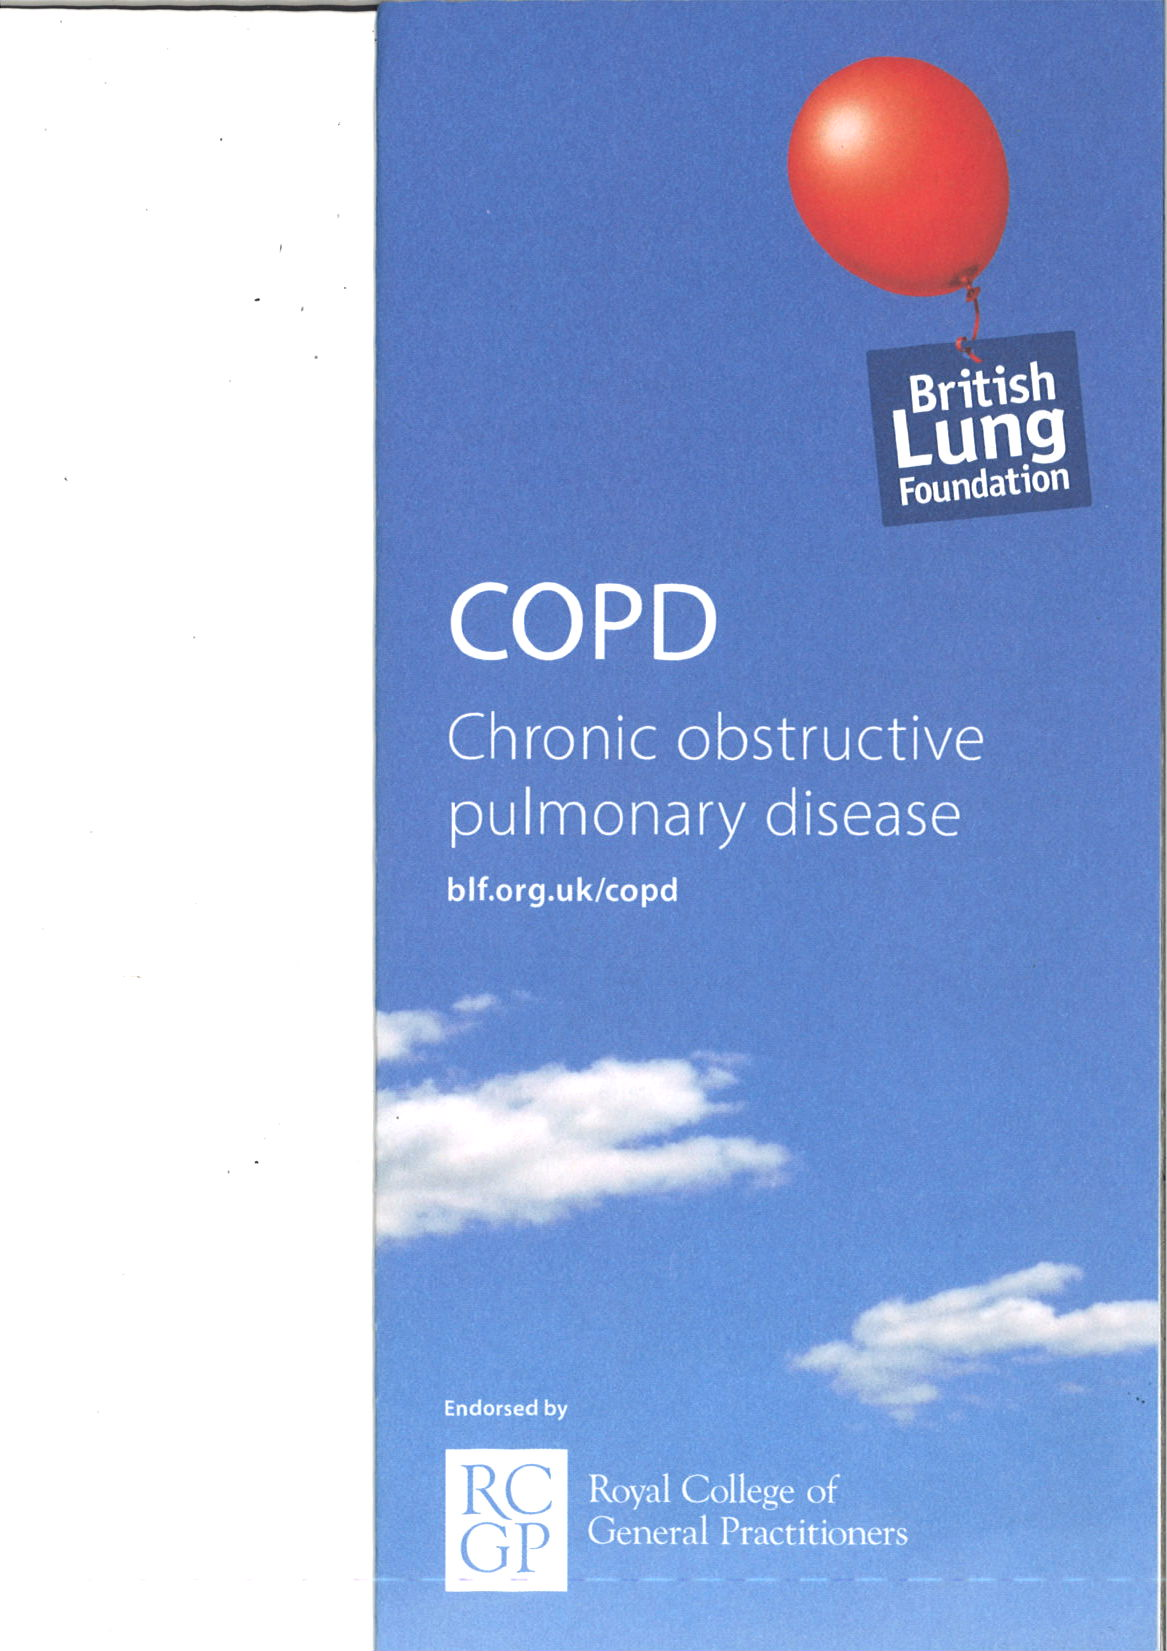 health promotion on copd Public health england (phe) is today (29 december 2015) highlighting the debilitating nature of serious lung diseases for which smoking is the biggest preventable risk factor, after the.